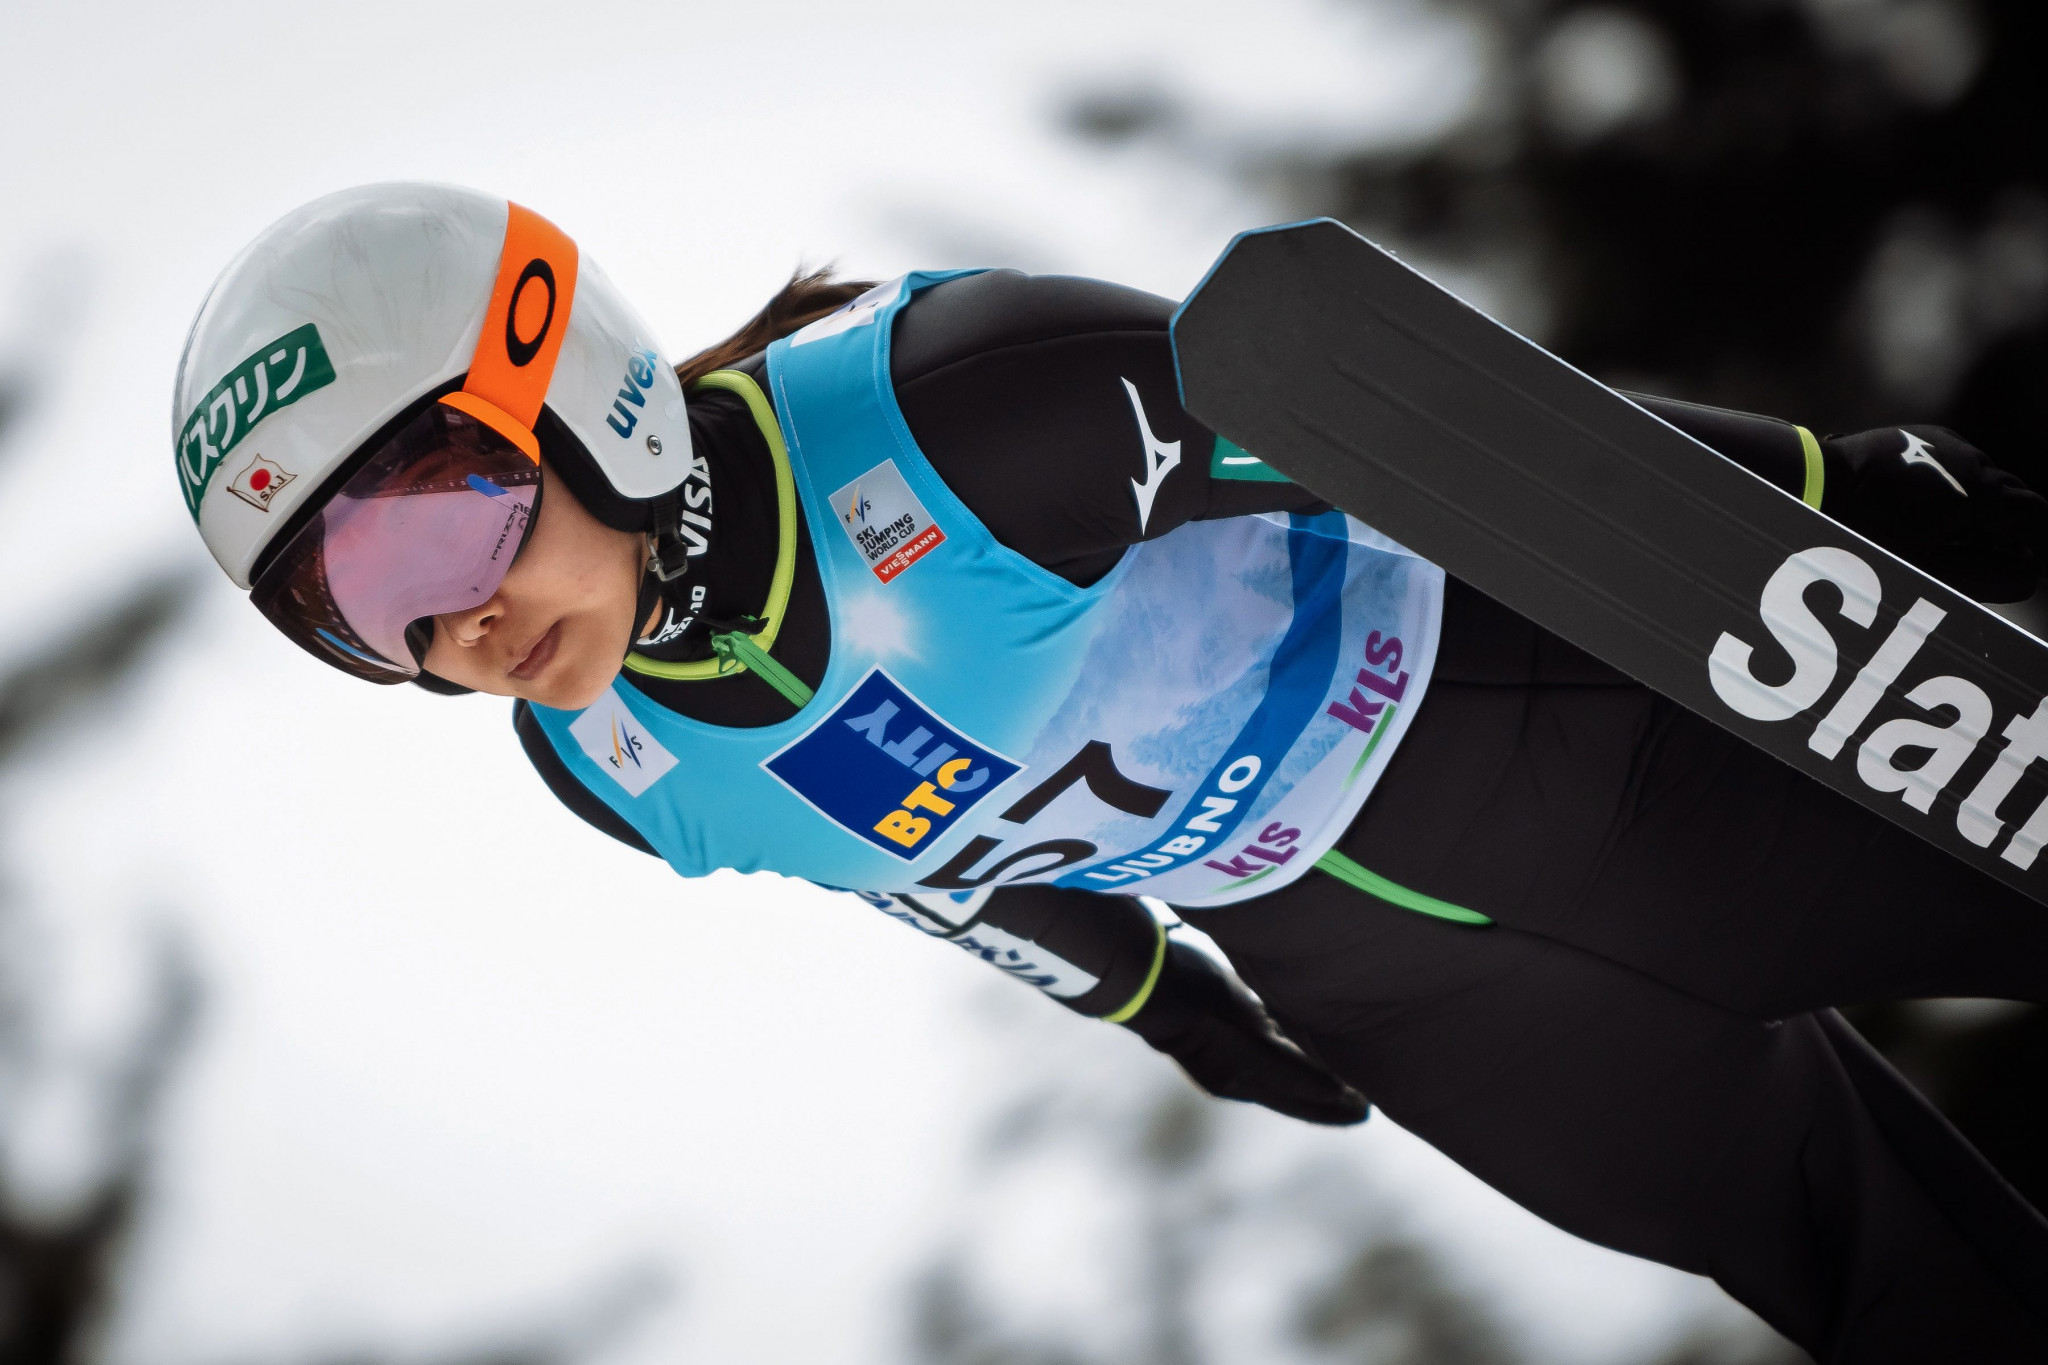 Japan's Sara Takanashi ended Olympic champion Maren Lundby's run of dominance in the FIS Ski Jumping World Cup with victory in Ljubno today ©Getty Images